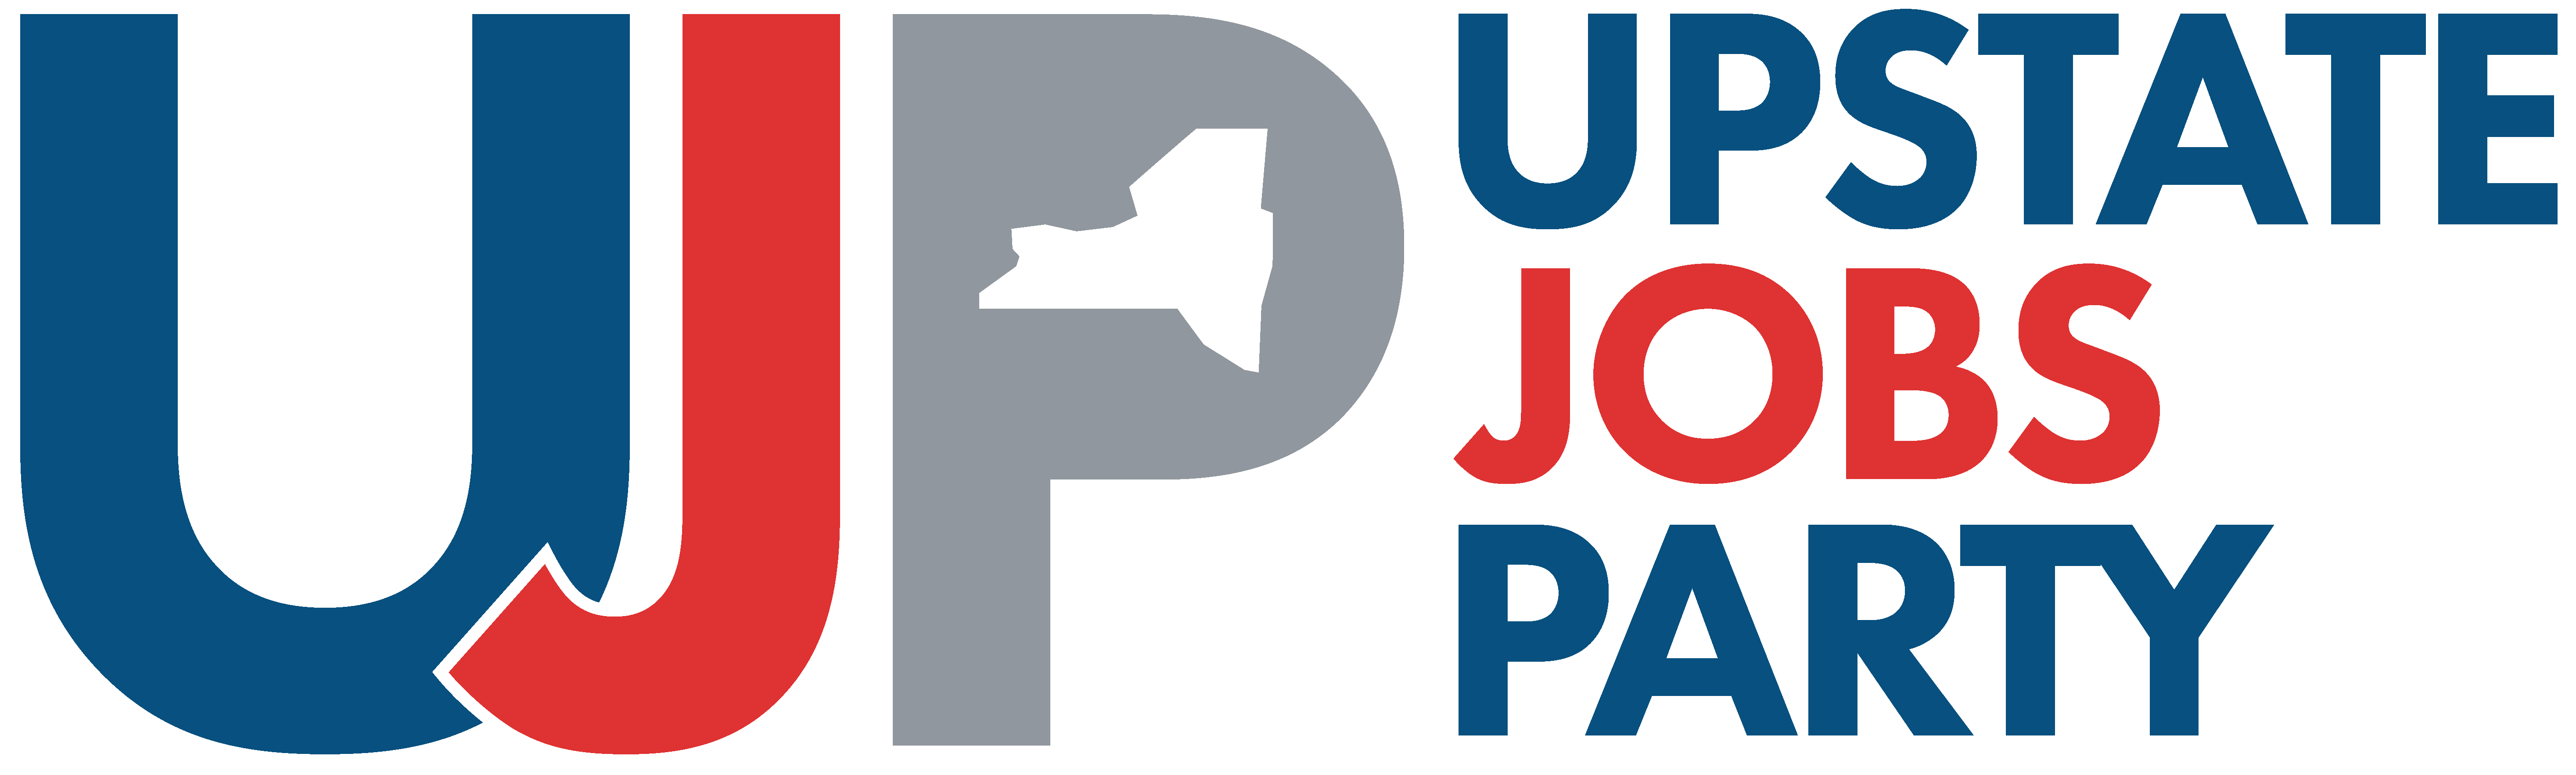 Upstate Jobs Party Announces 2018 Endorsements in Capital Region